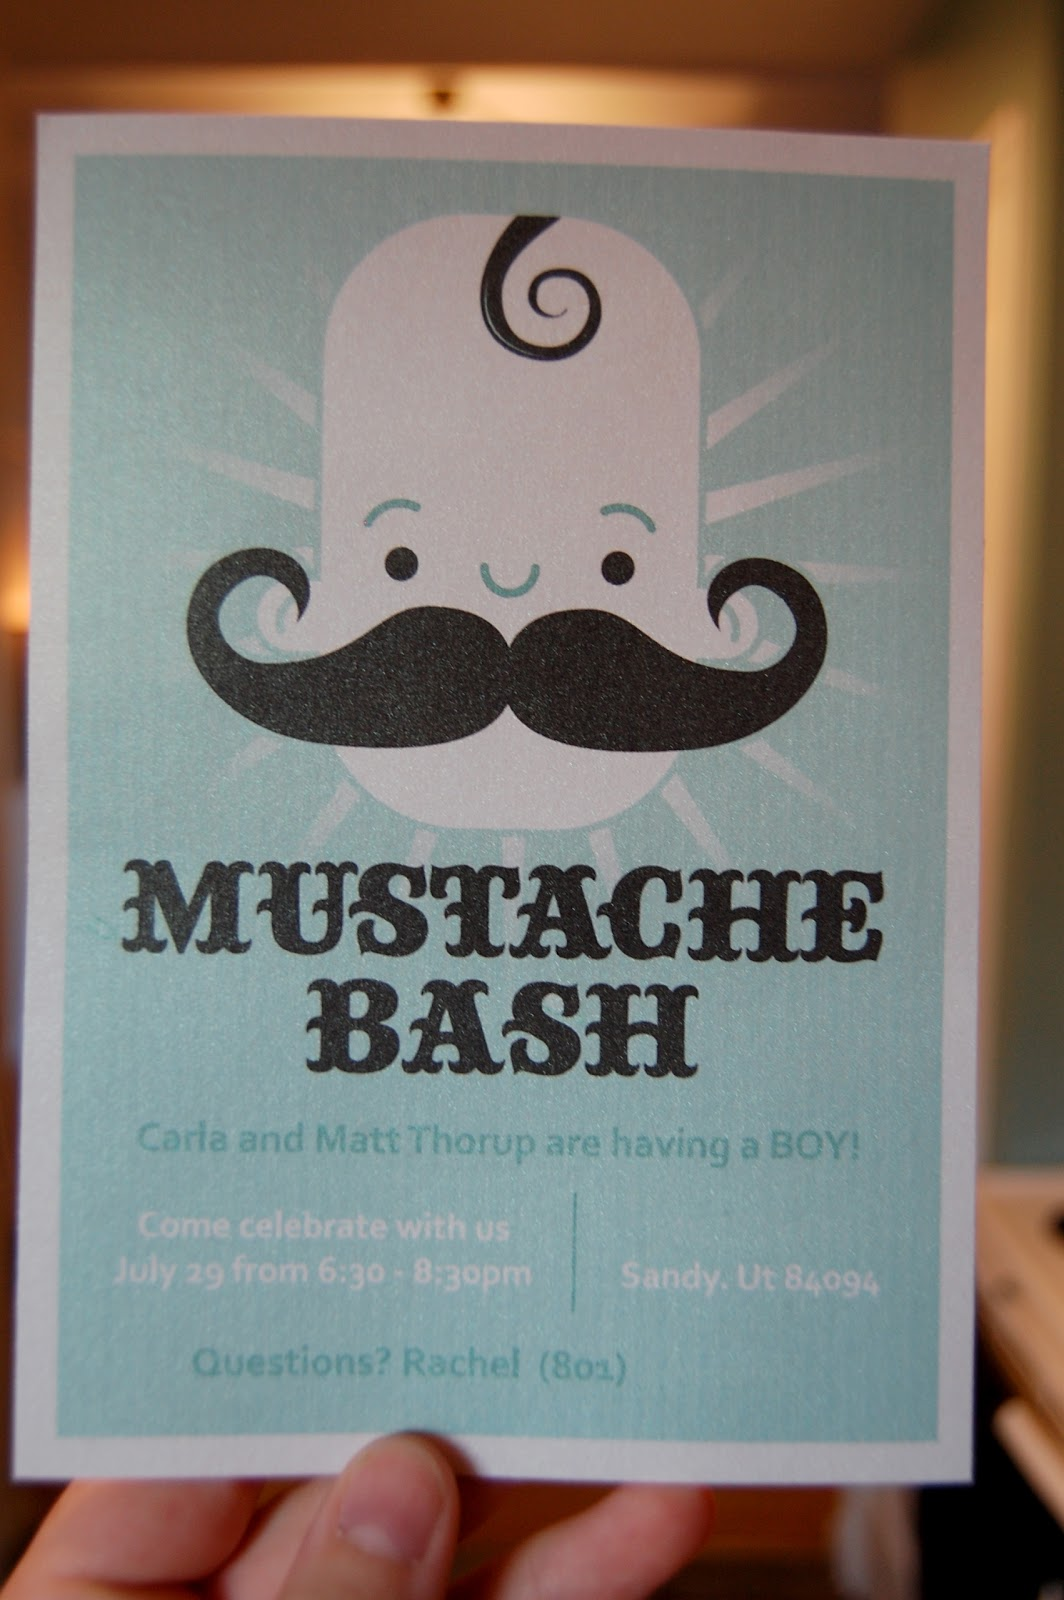 mustache bash invites for sale on etsy they are designed by my